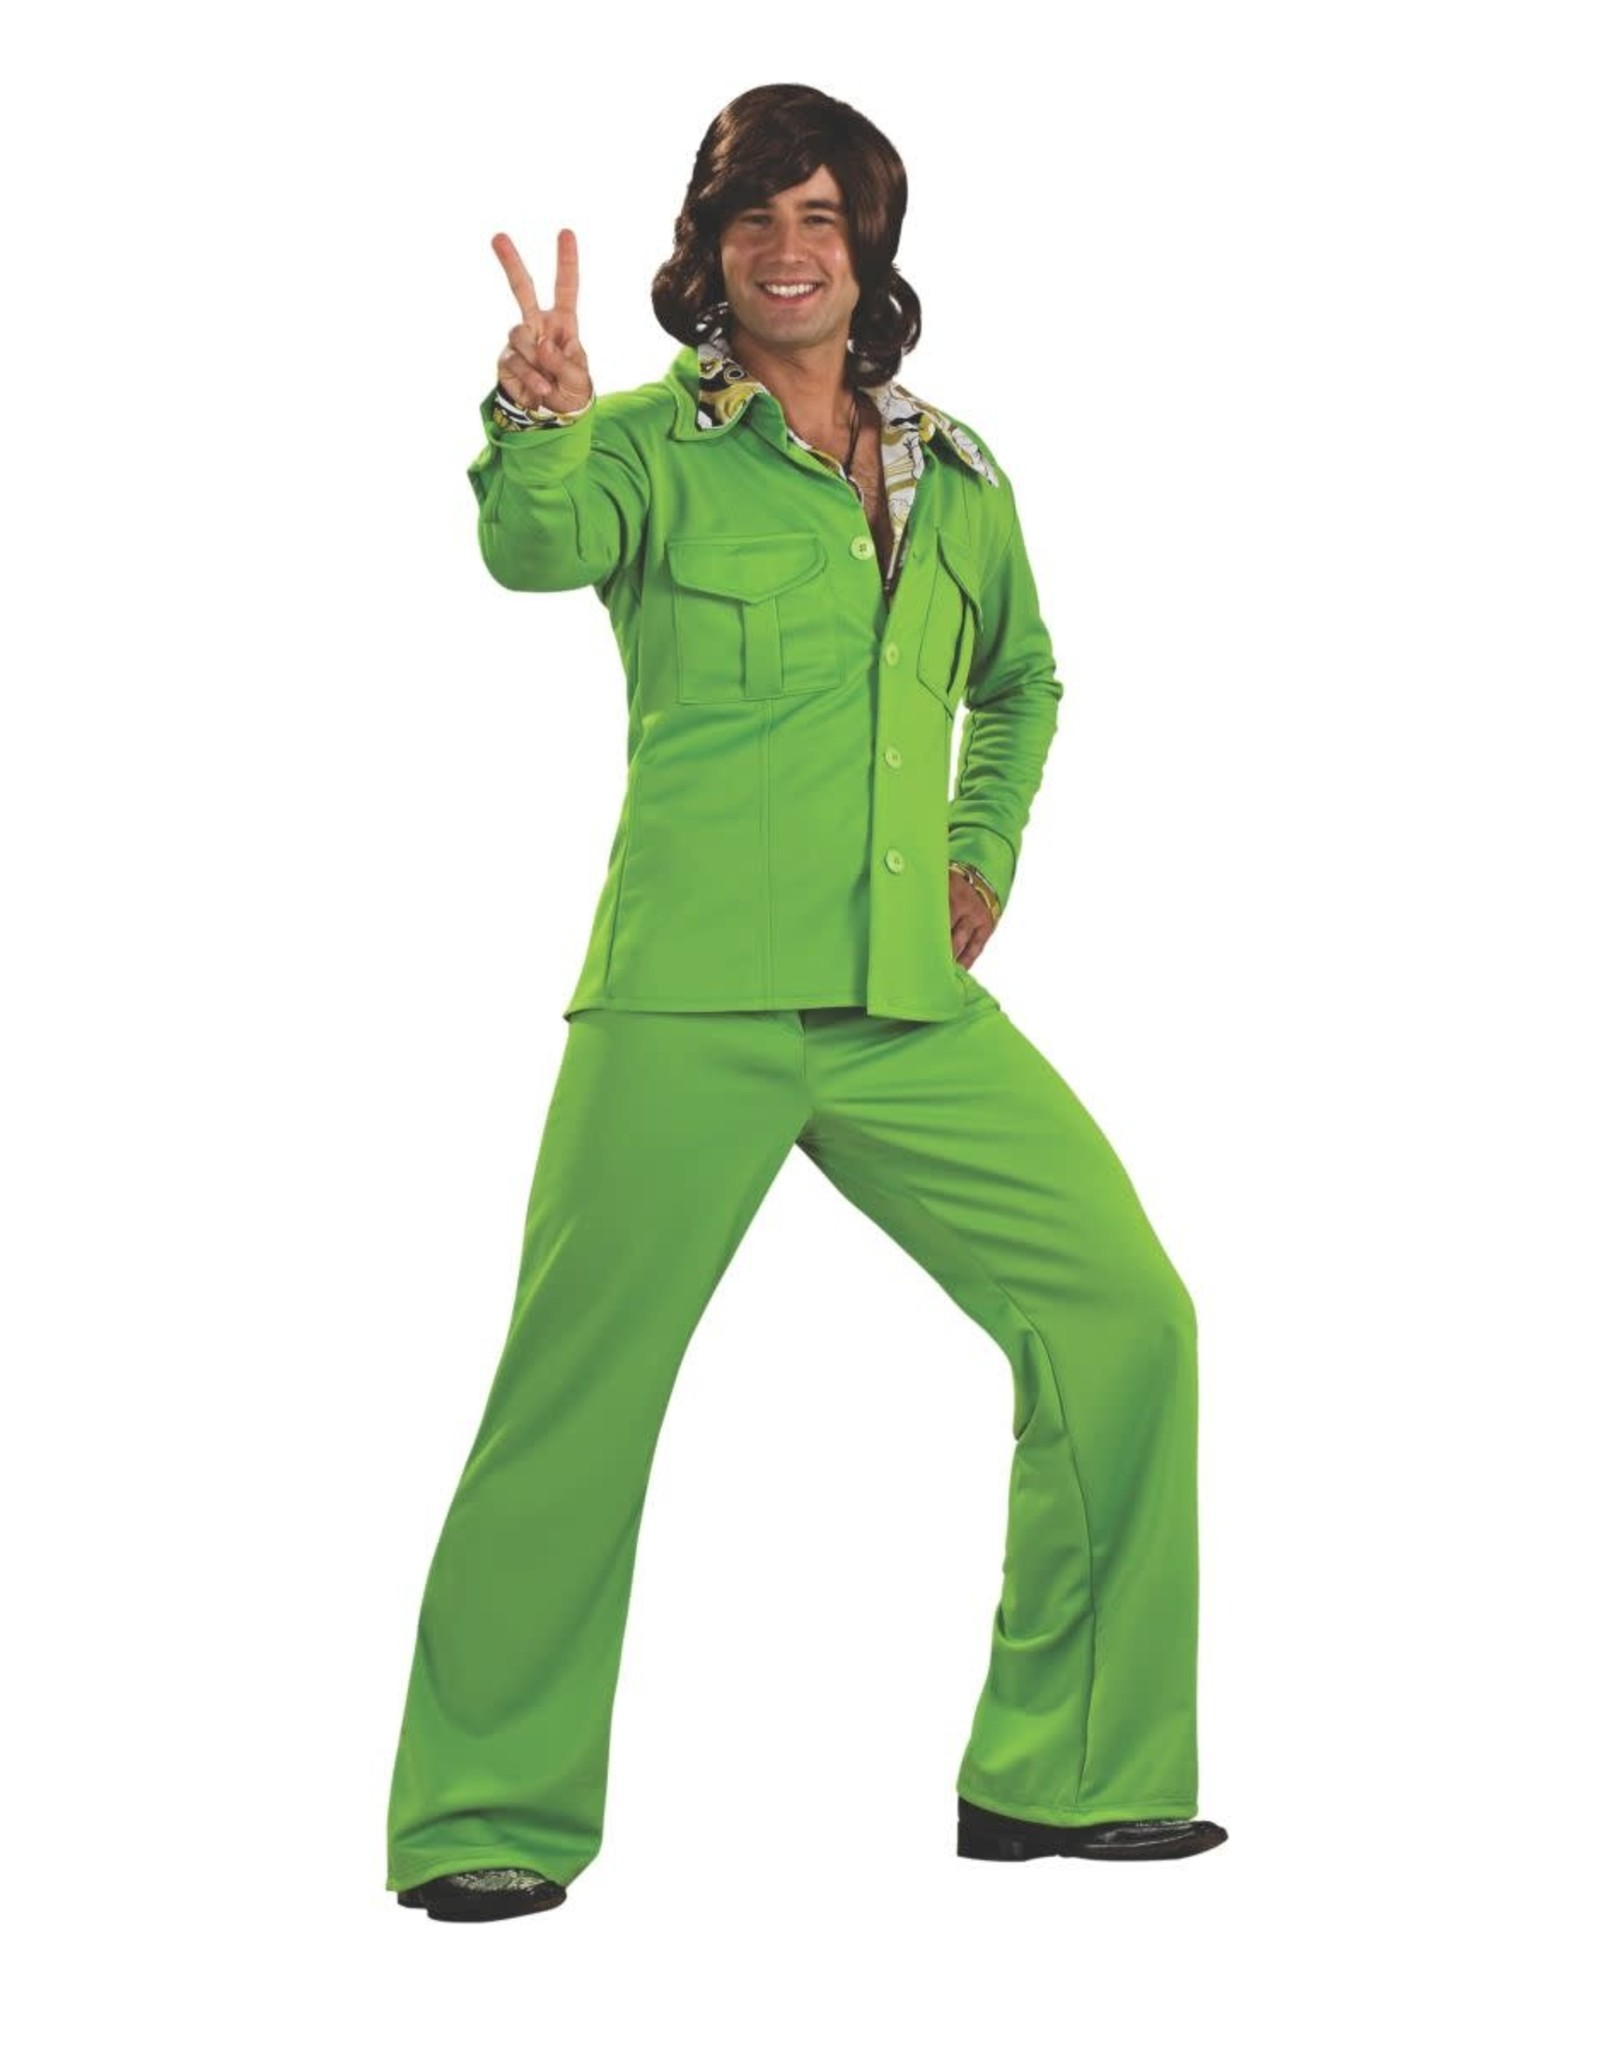 Rubies Costume Green Leisure Suit